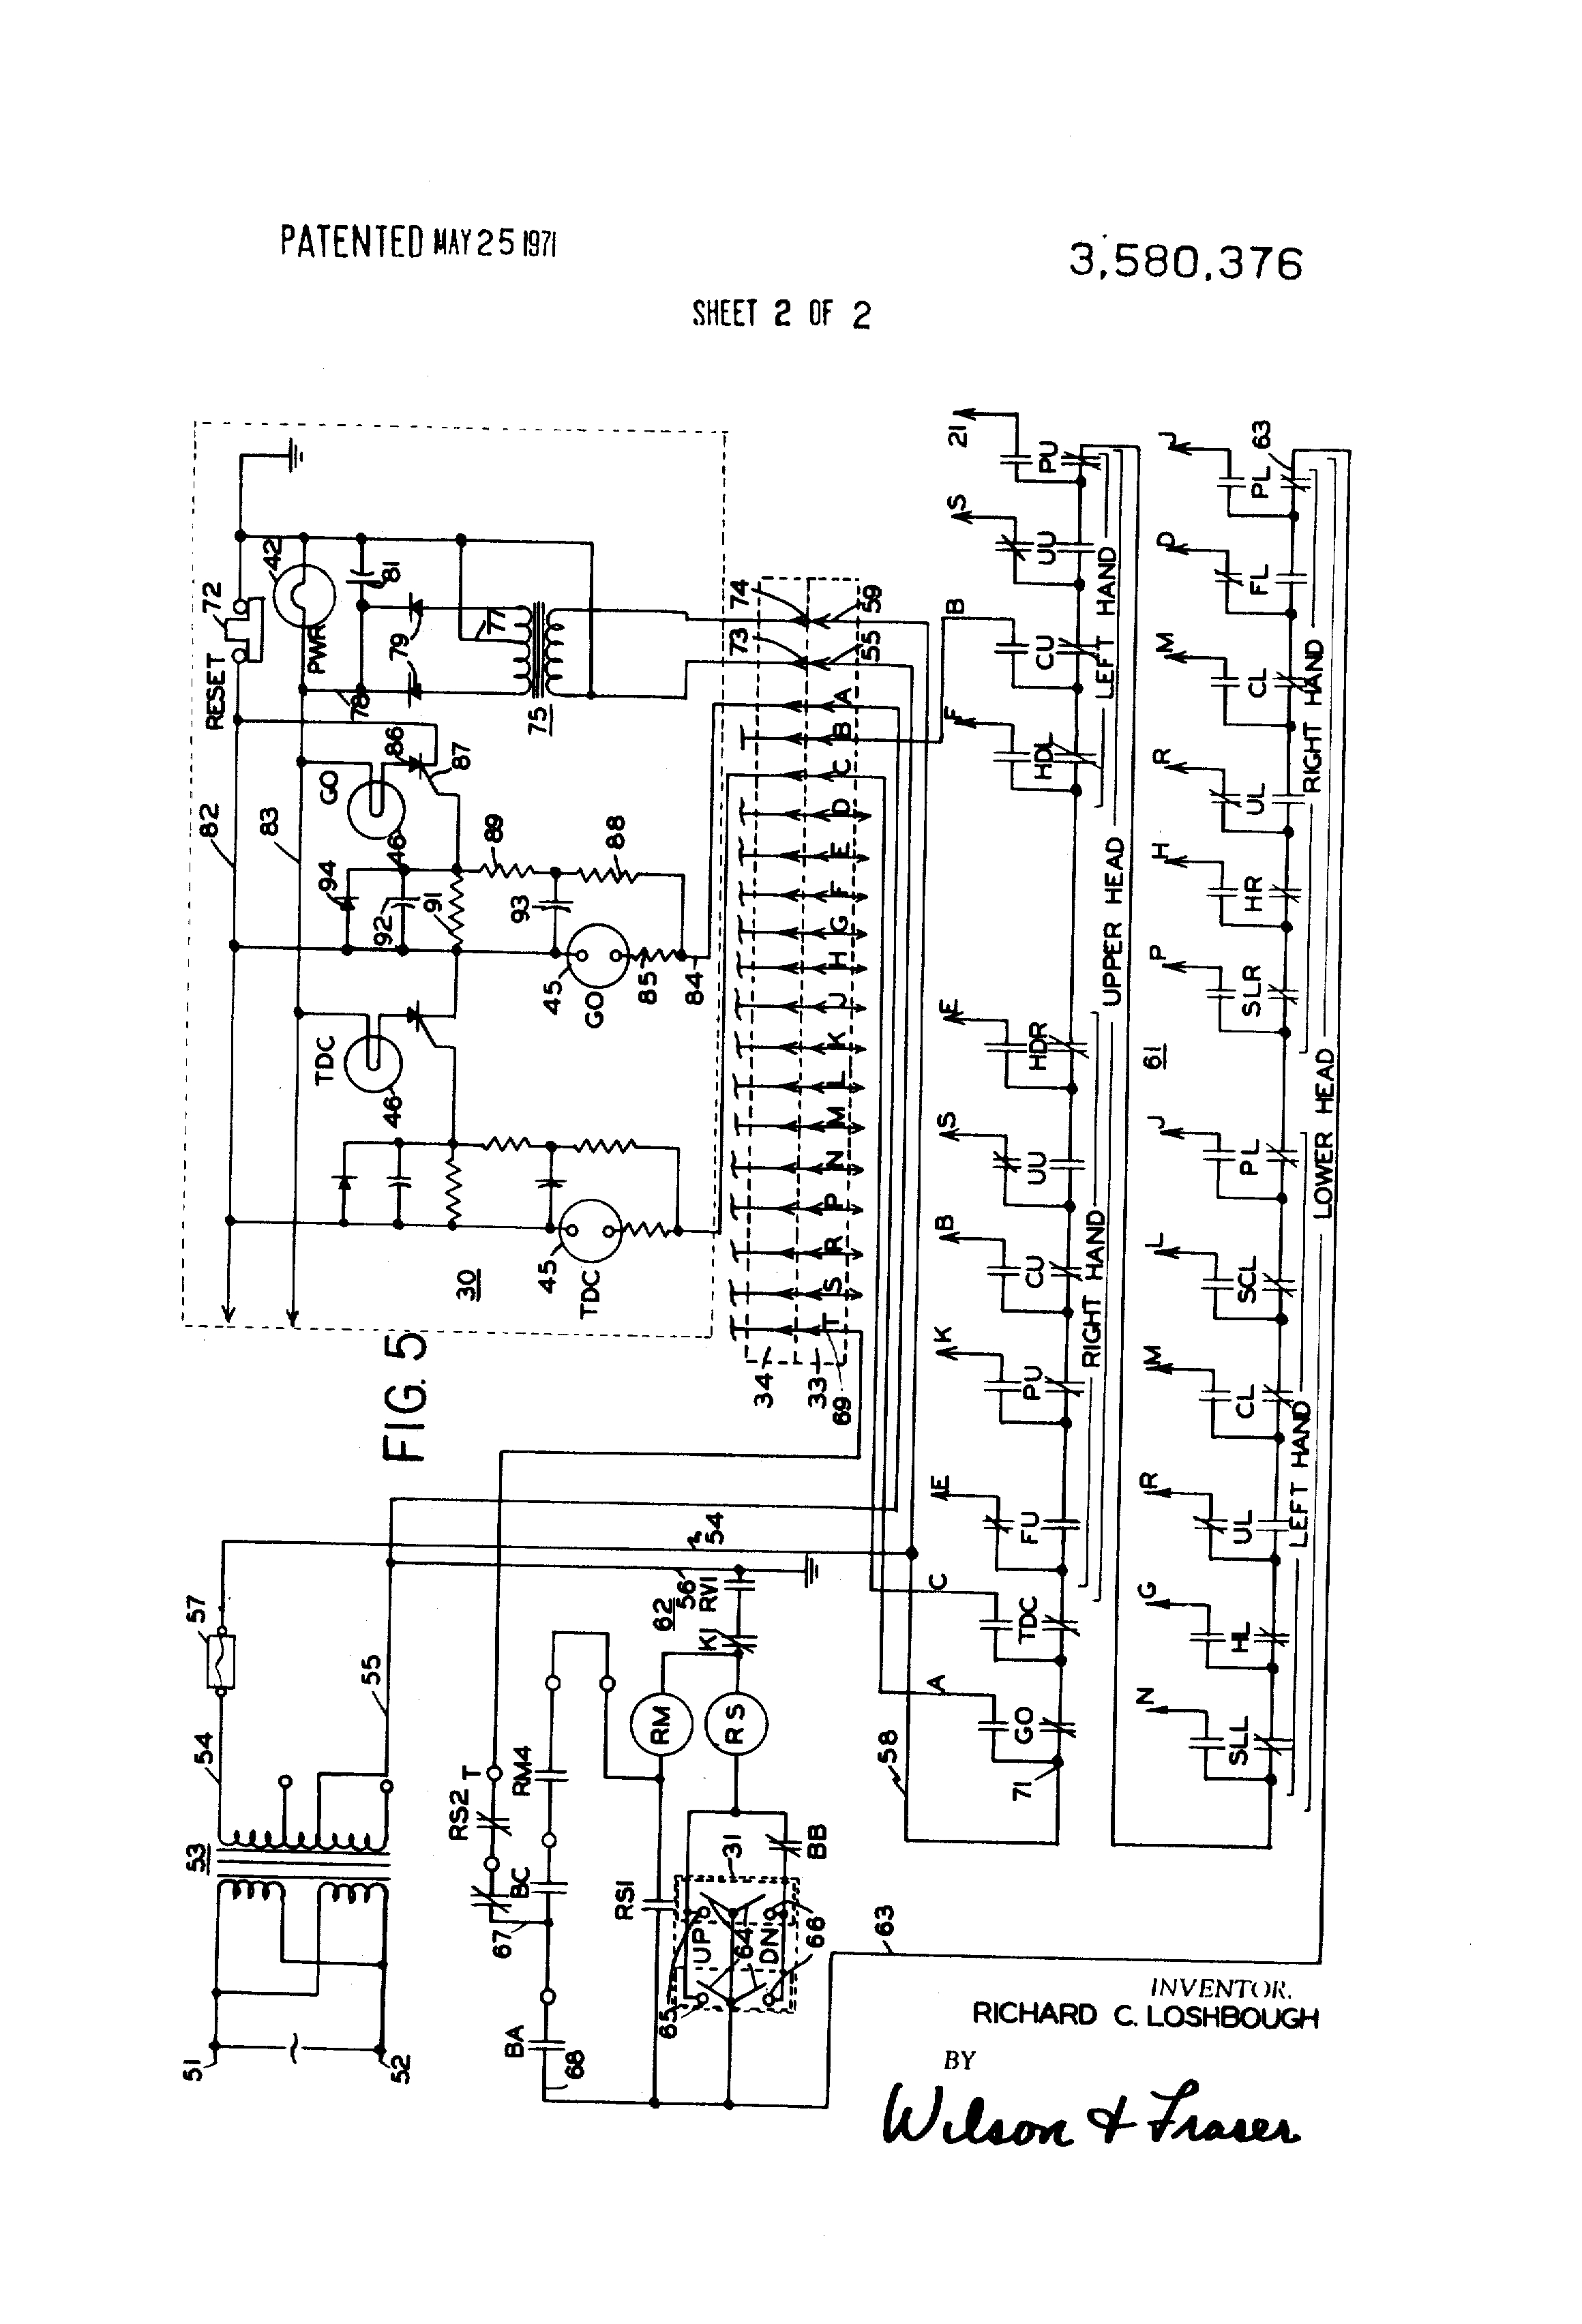 stannah 420 wiring diagram Collection-US 2 For Stannah Stair Lift Wiring Diagram 14-f